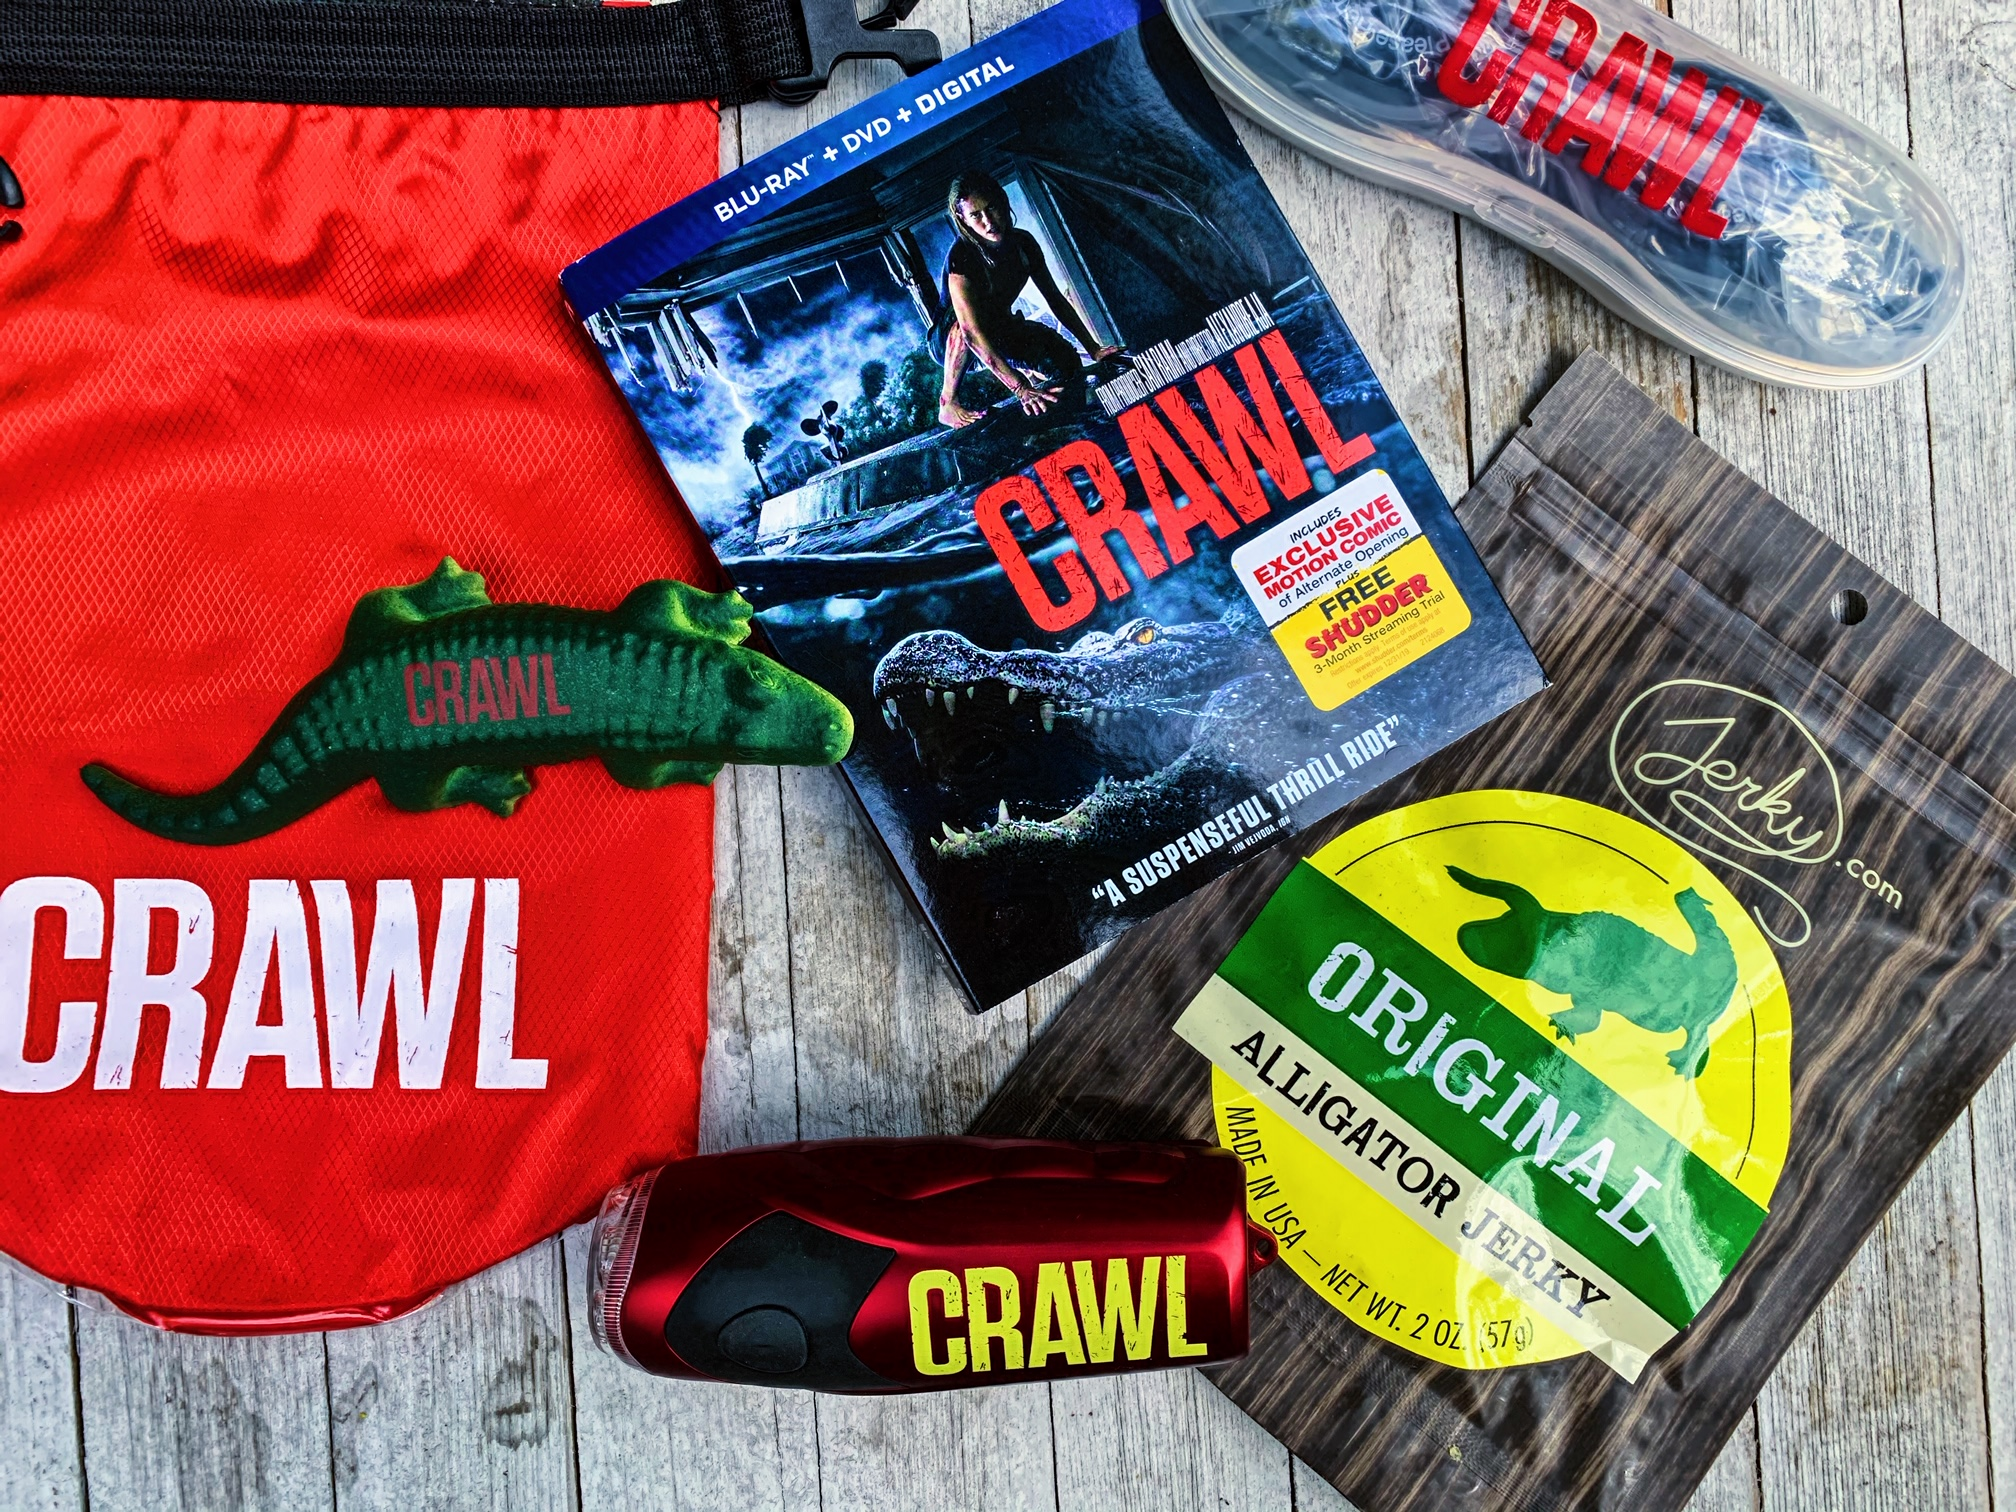 Crawl Movie Is Available To Crawl Into Your Home Now On Blu Ray Dvd Digital Crawlmovie Kiwi The Beauty Kiwi The Beauty